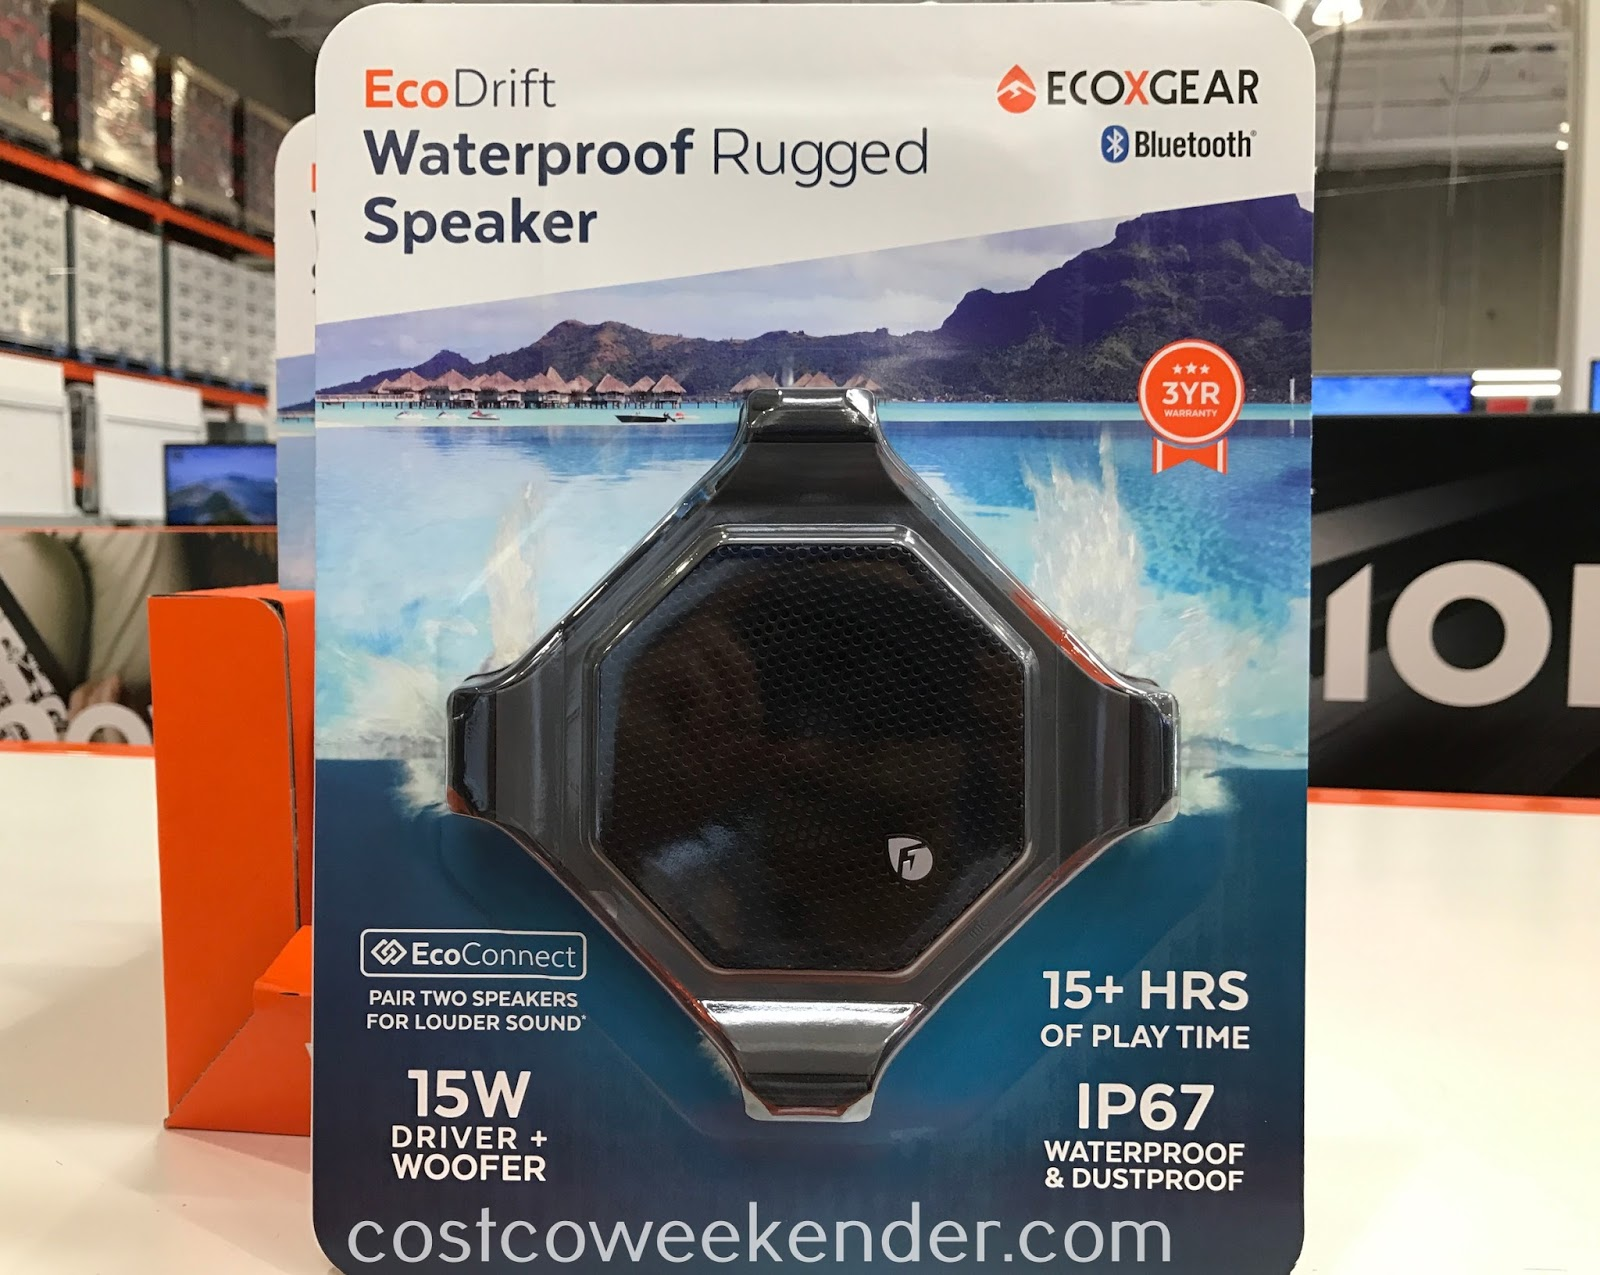 Take your music just about anywhere with the EcoXGear EcoDrift Waterproof Rugged Speaker